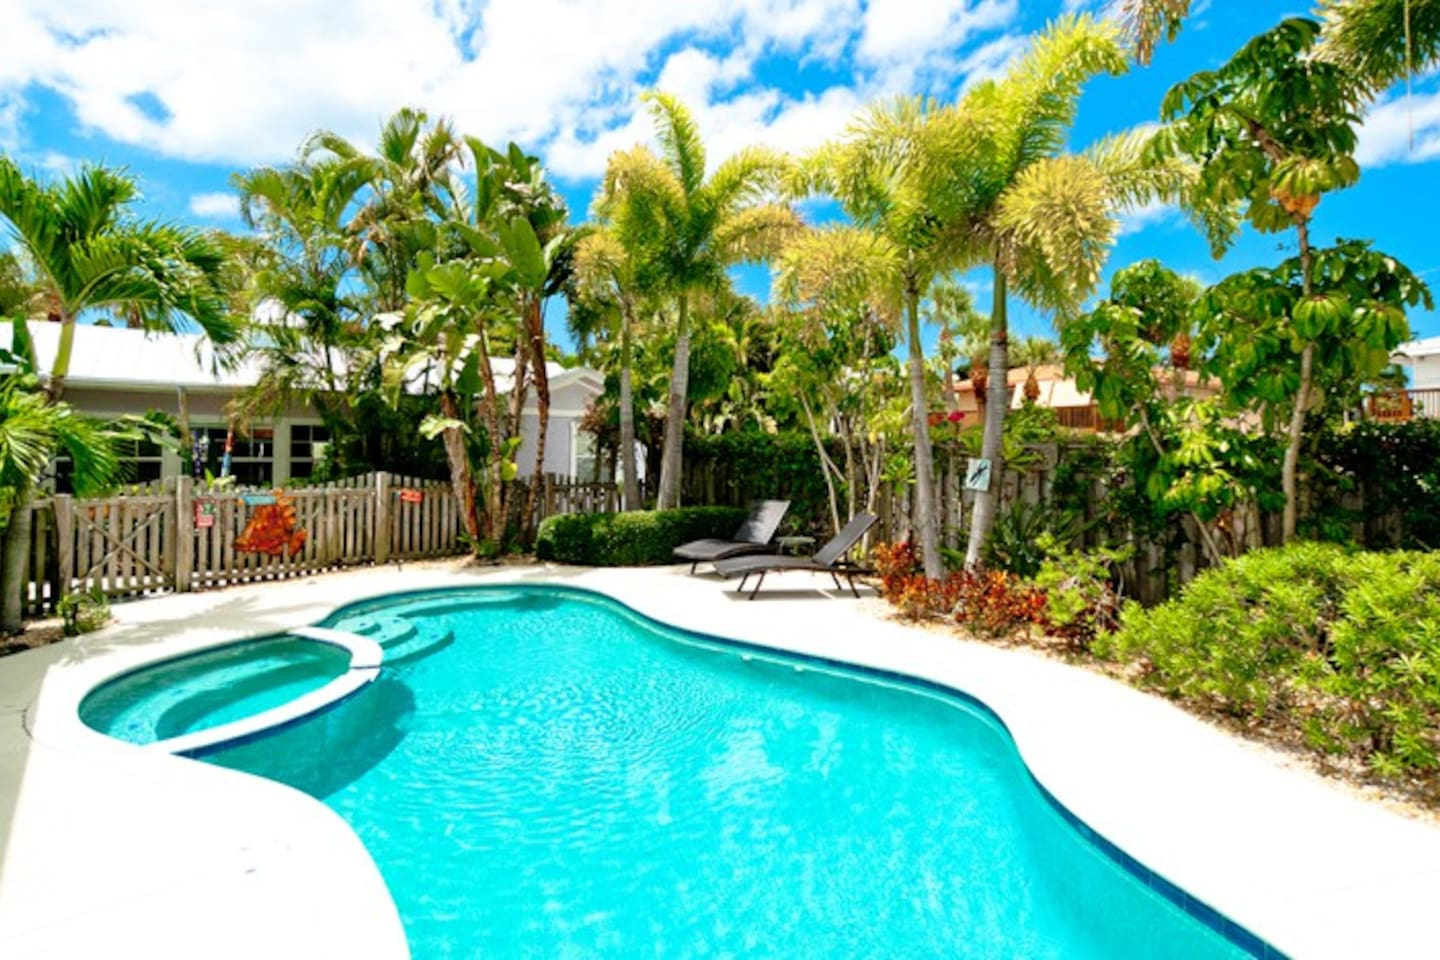 Spinnakers Vacation Cottages Pool area.  Enjoy the beautiful pool after a day at the beach!